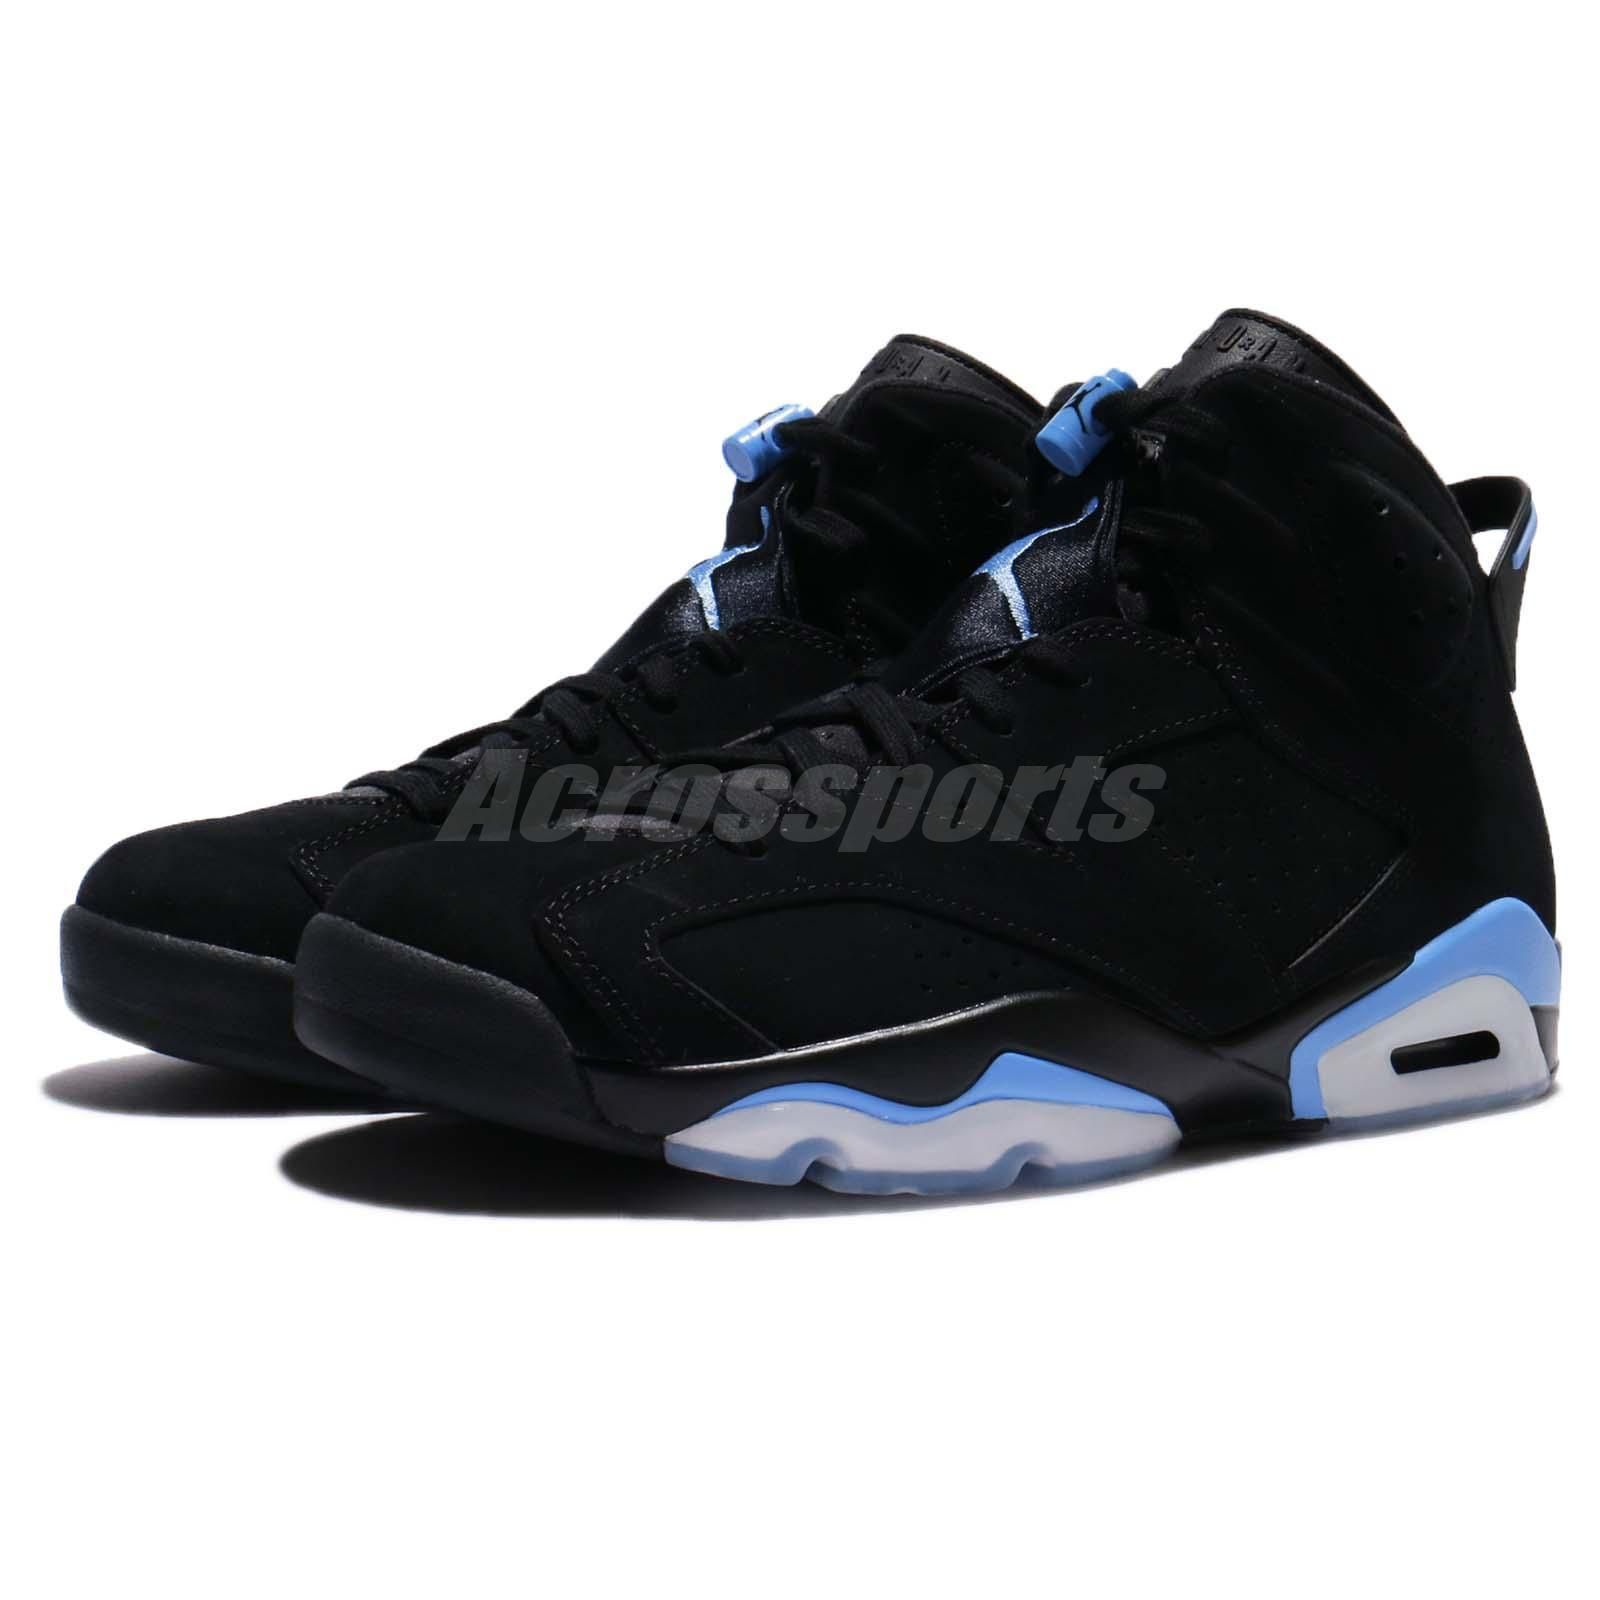 9c6c0c4c247 Nike Air Jordan 6 Retro VI UNC University Blue Black AJ6 Shoes Men 384664- 006 S N  384664006 Color  BLACK UNIVERSITY BLUE Made In  Condition   Brand New ...